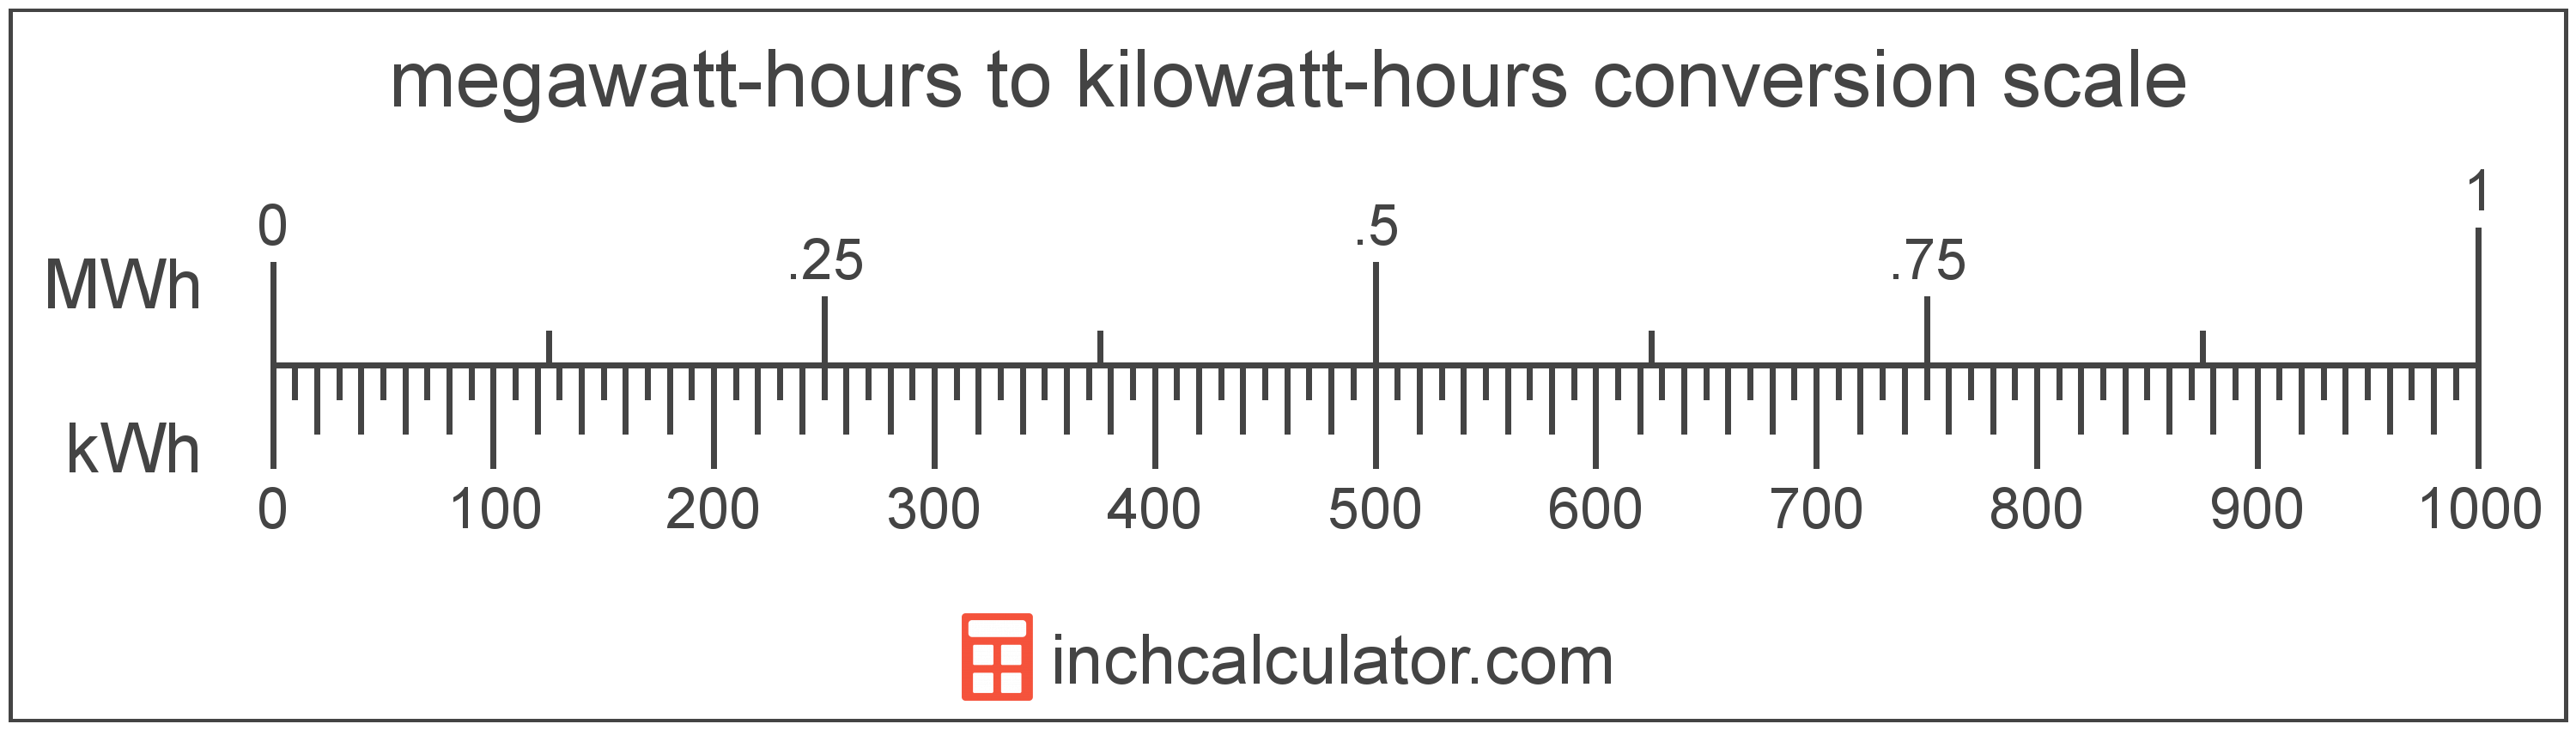 conversion scale showing megawatt-hours and equivalent kilowatt-hours energy values